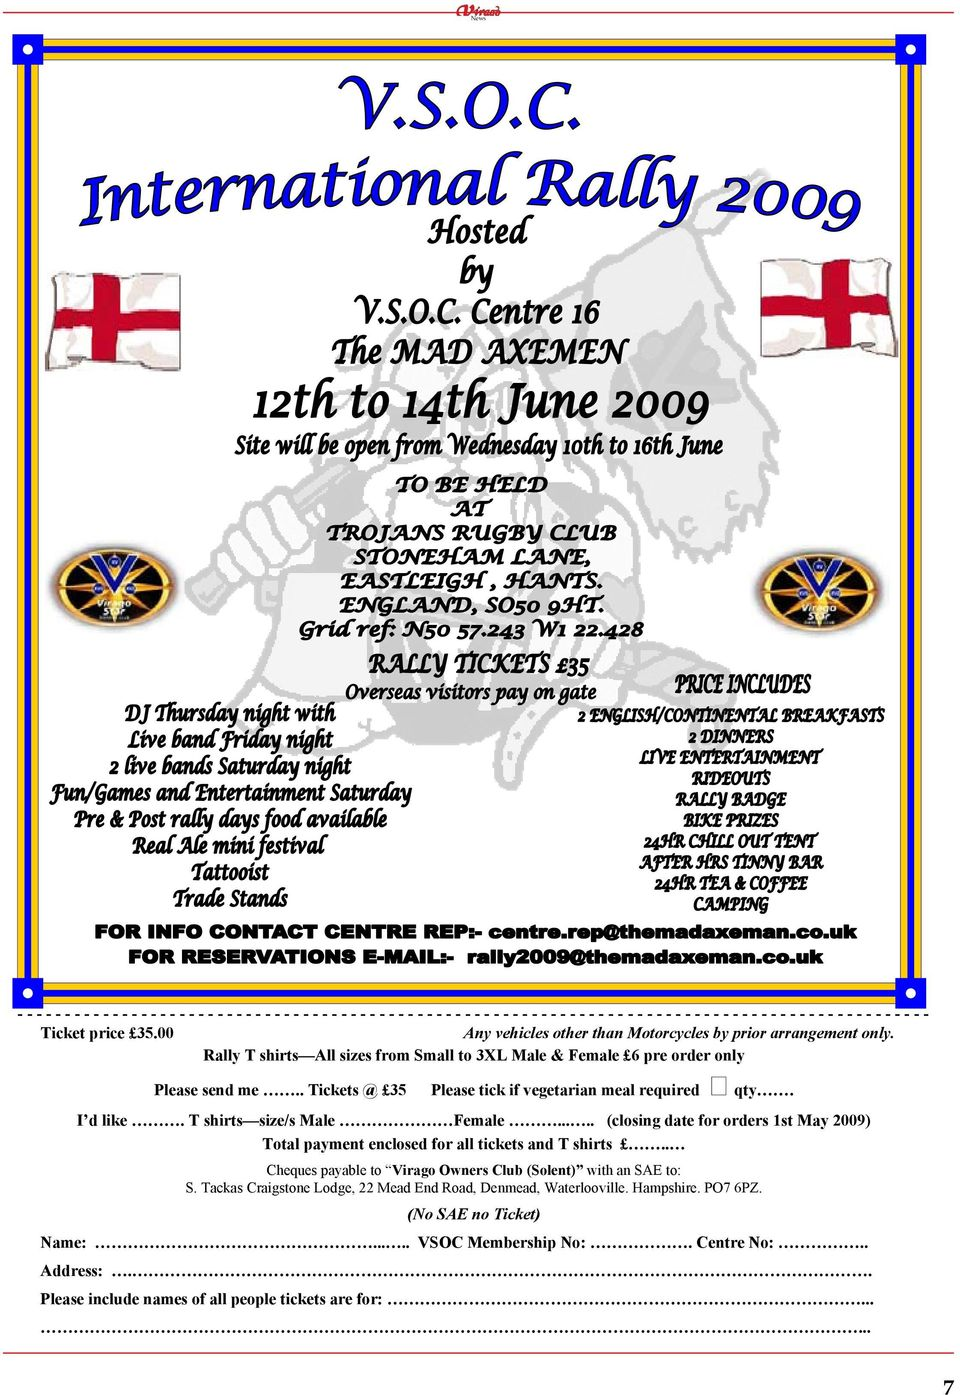 .... (closing date for orders 1st May 2009) Total payment enclosed for all tickets and T shirts.. Cheques payable to Virago Owners Club (Solent) with an SAE to: S.